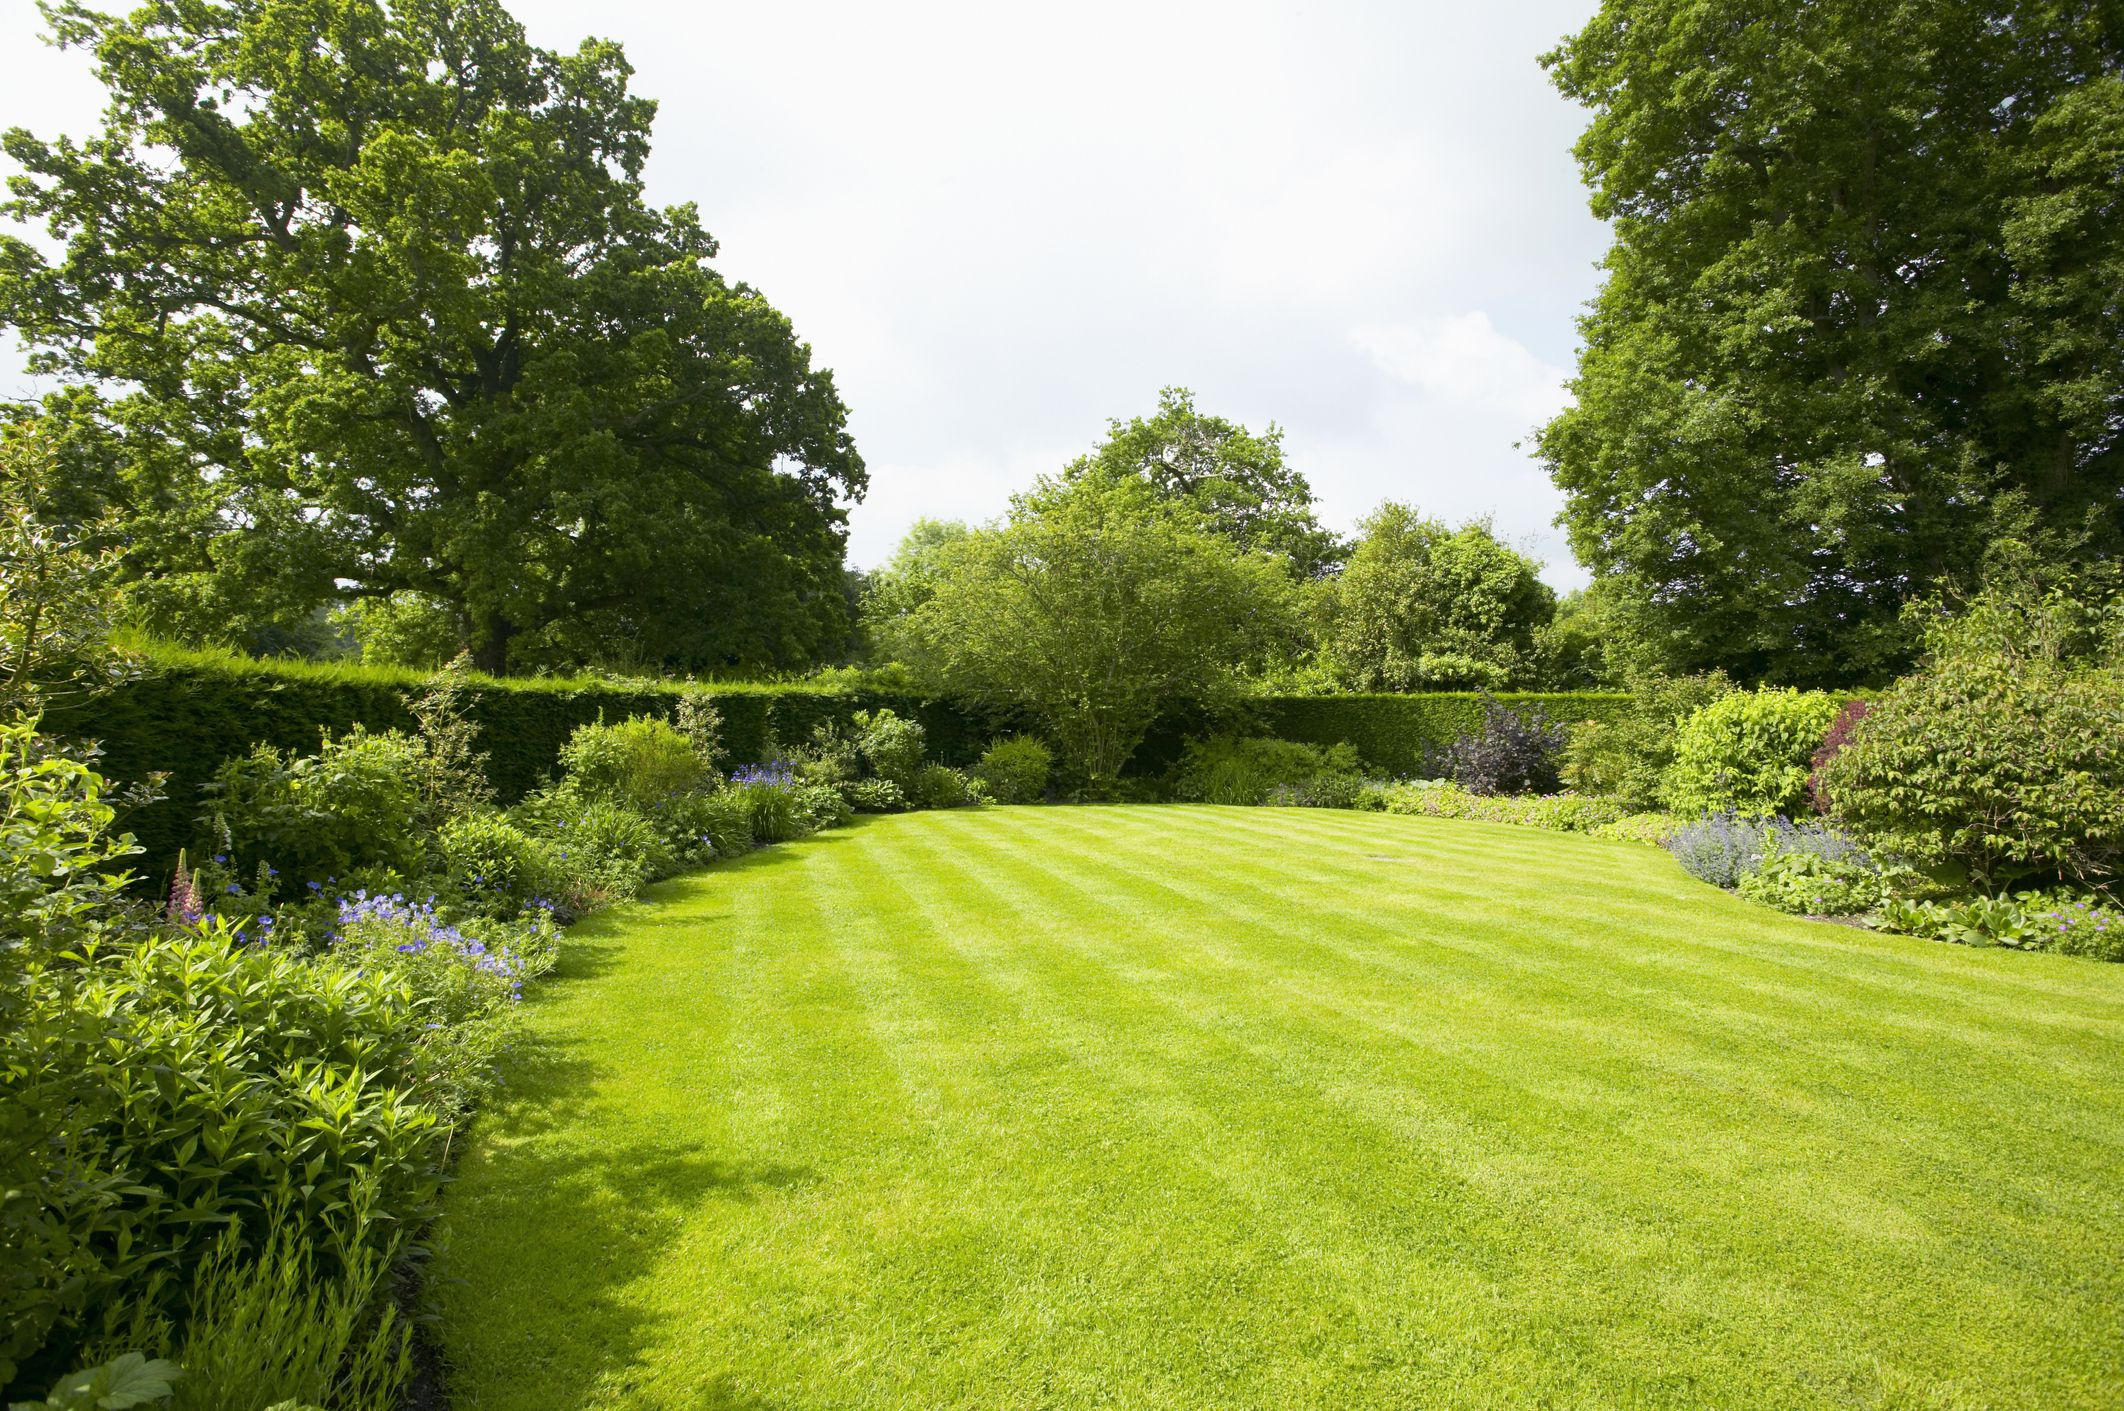 Tips For Growing A Green Lawn